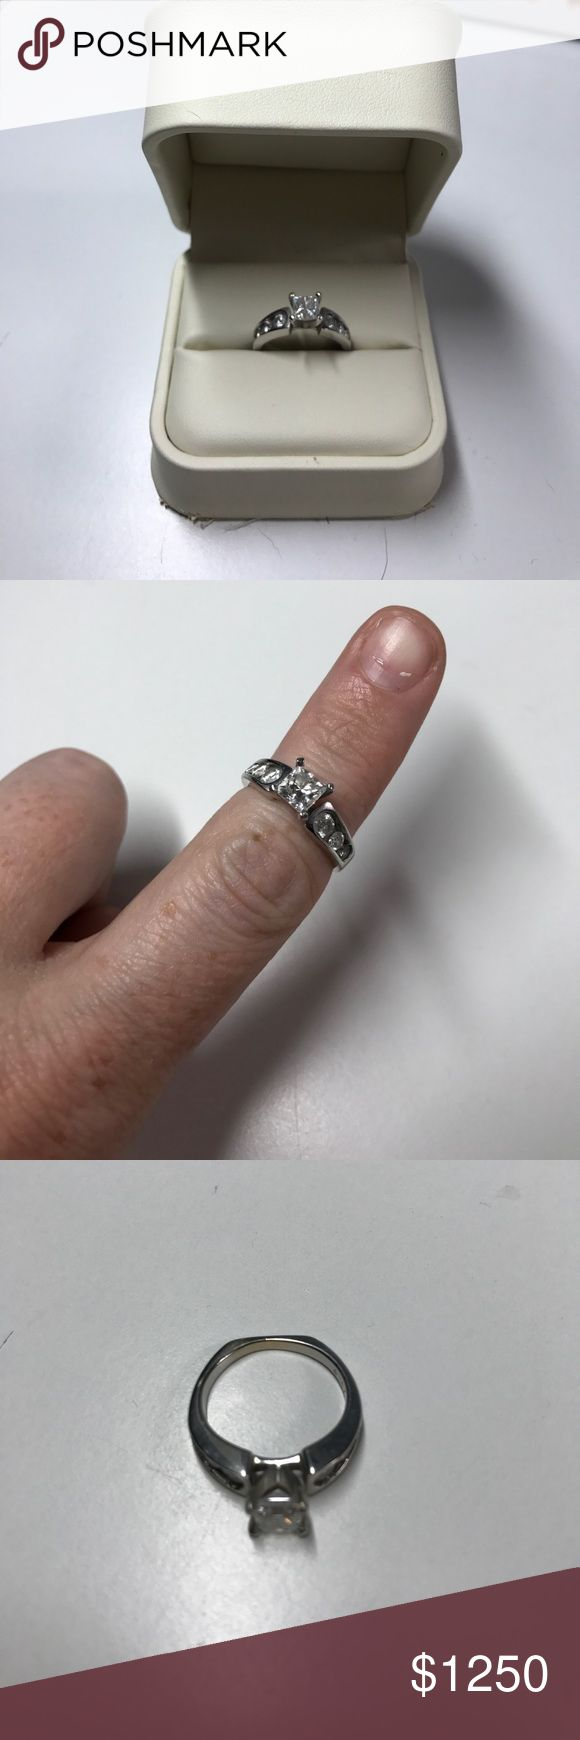 1.0k diamond engagement ring Ring was my fiancé prior to us getting engaged she wore it around her neck so there is not to much wear and tear it is a certified diamond from jareds jewlers Jared The Galleria of Jewlery Jewelry Rings